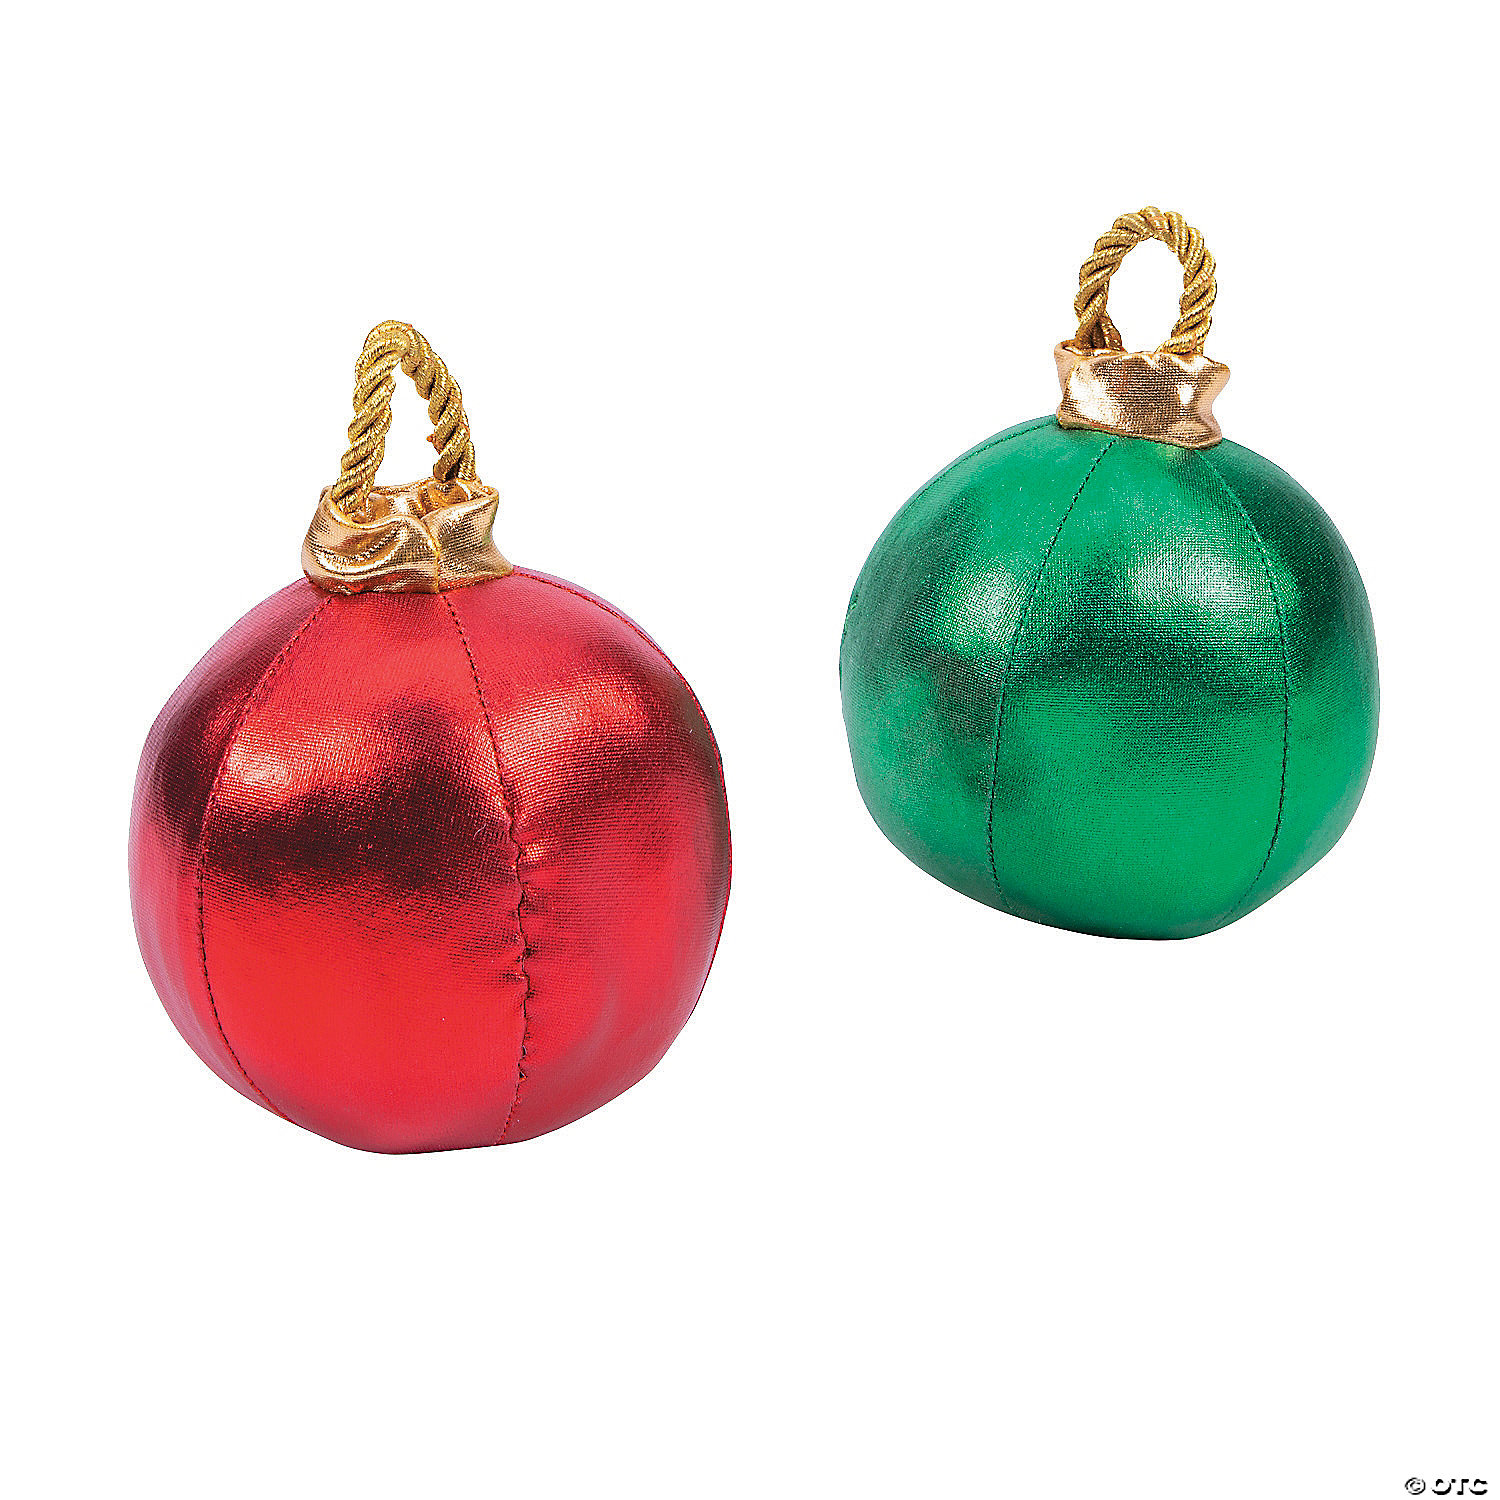 The Best Christmas Ornaments